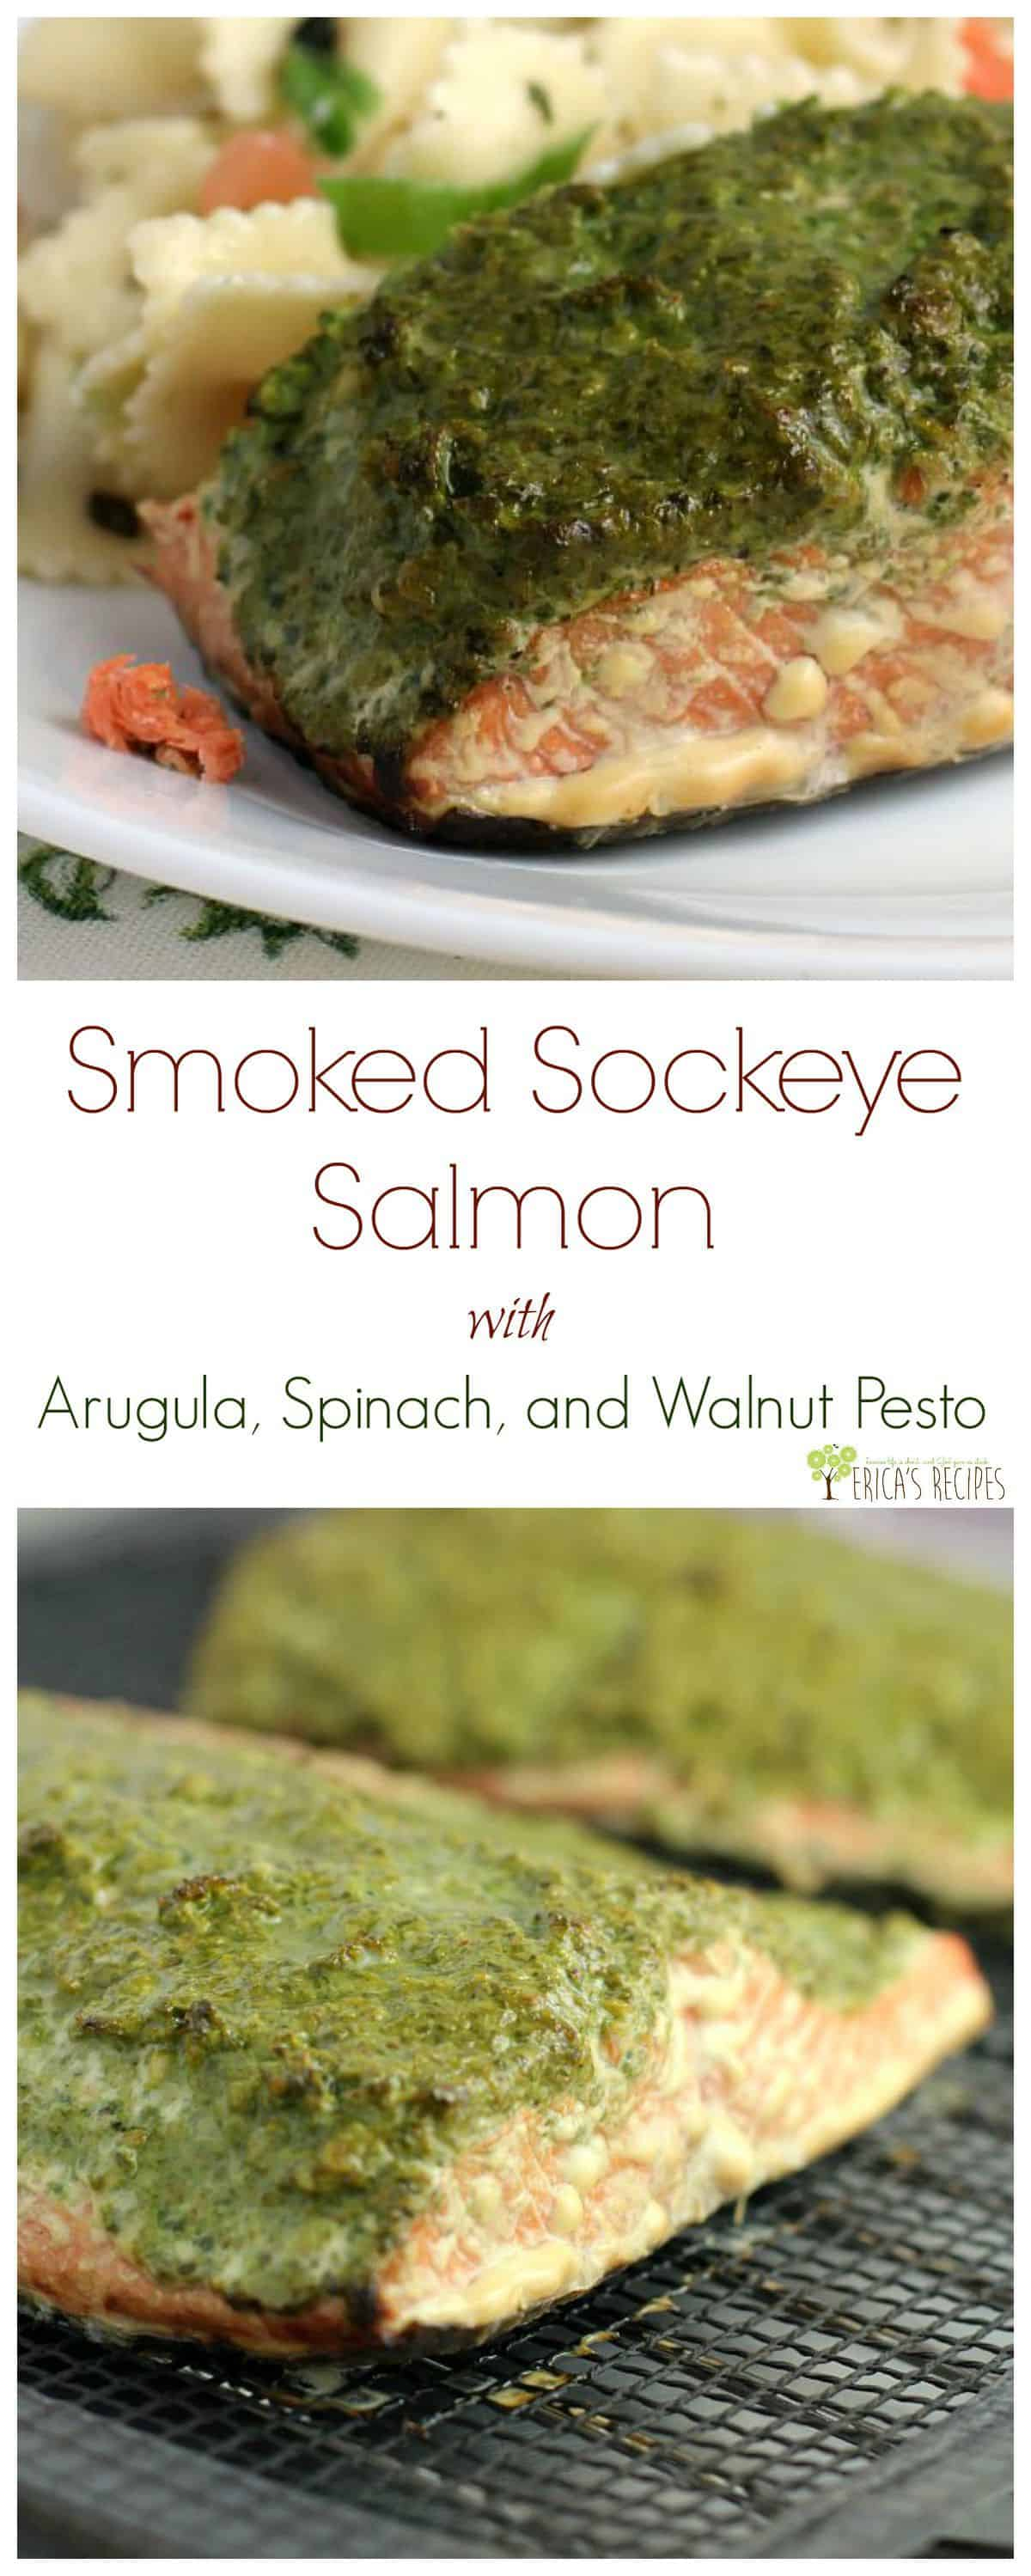 Smoked sockeye salmon recipes